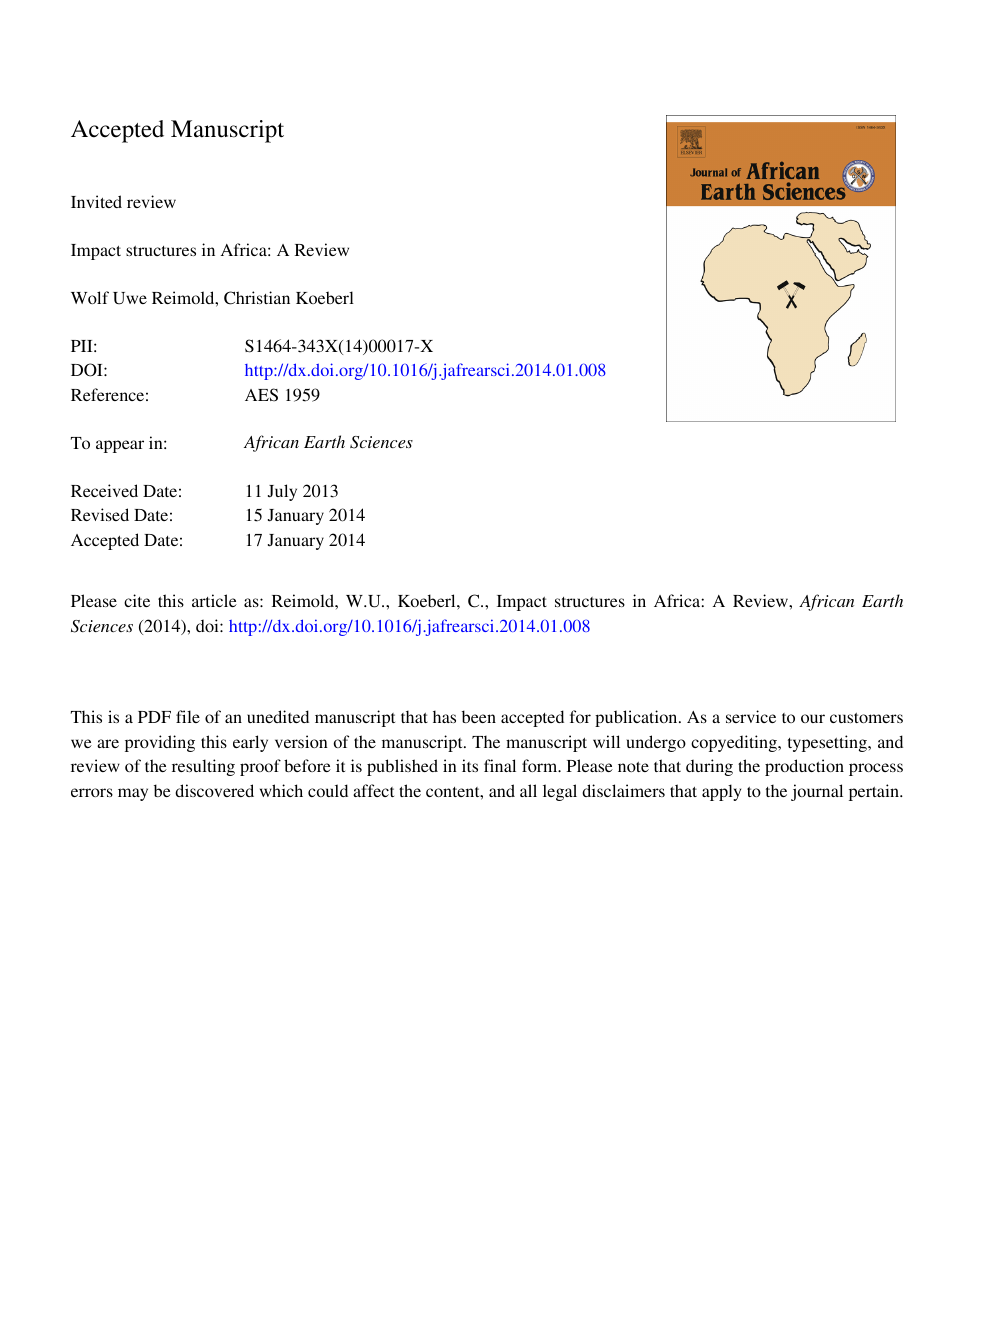 Impact structures in Africa: A review – topic of research